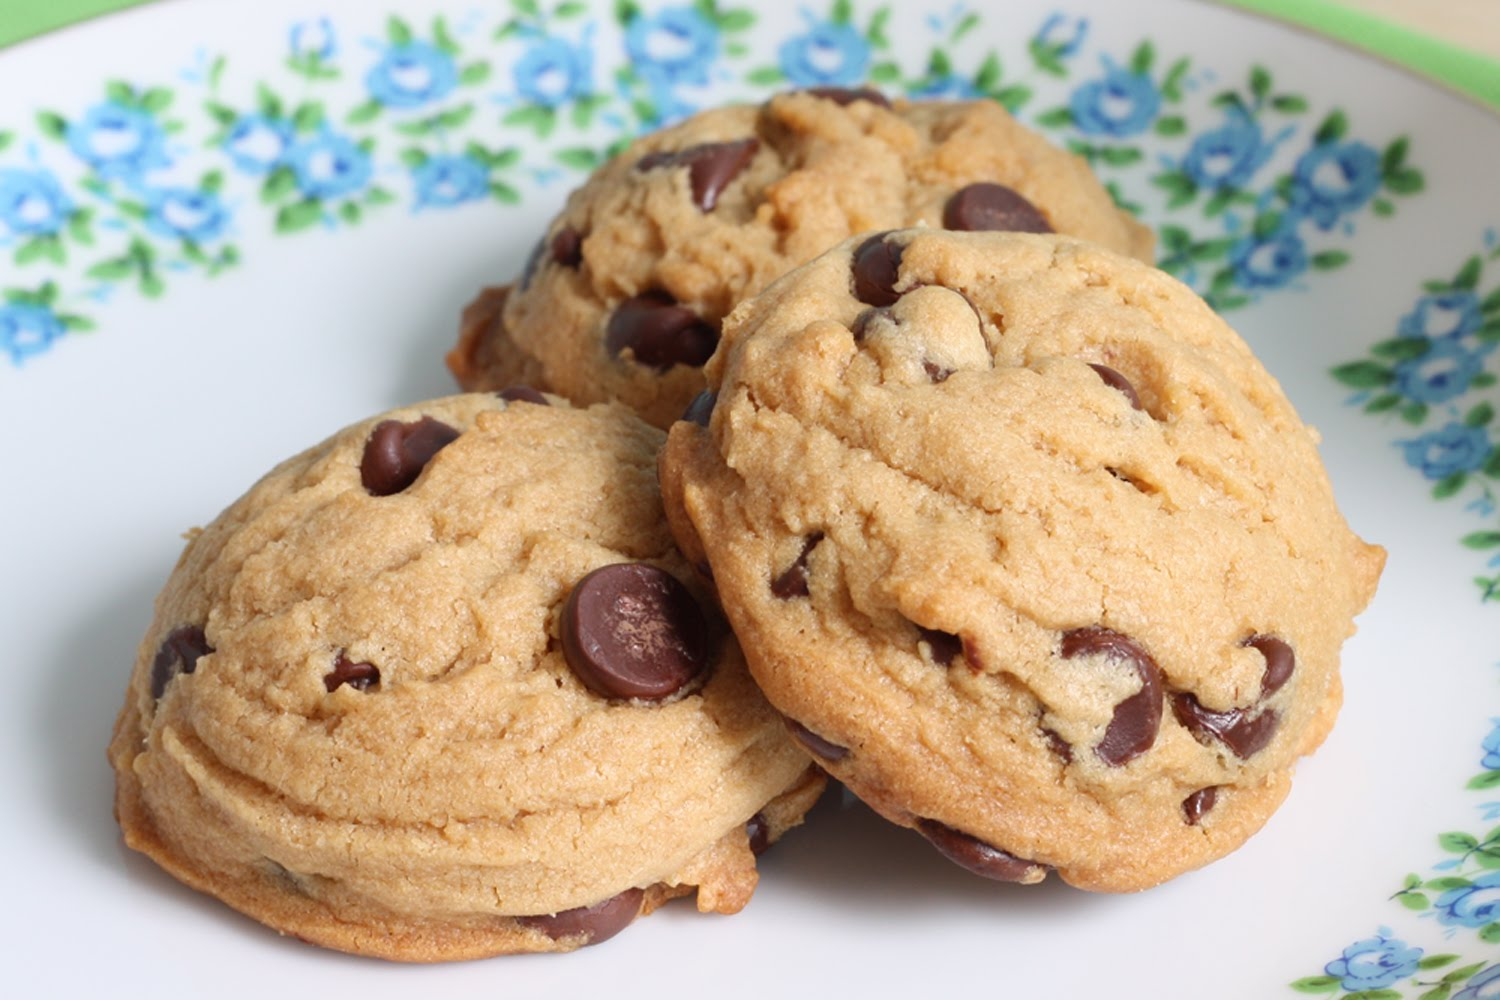 Brown Sugar Peanut Butter Chocolate Chip Cookies